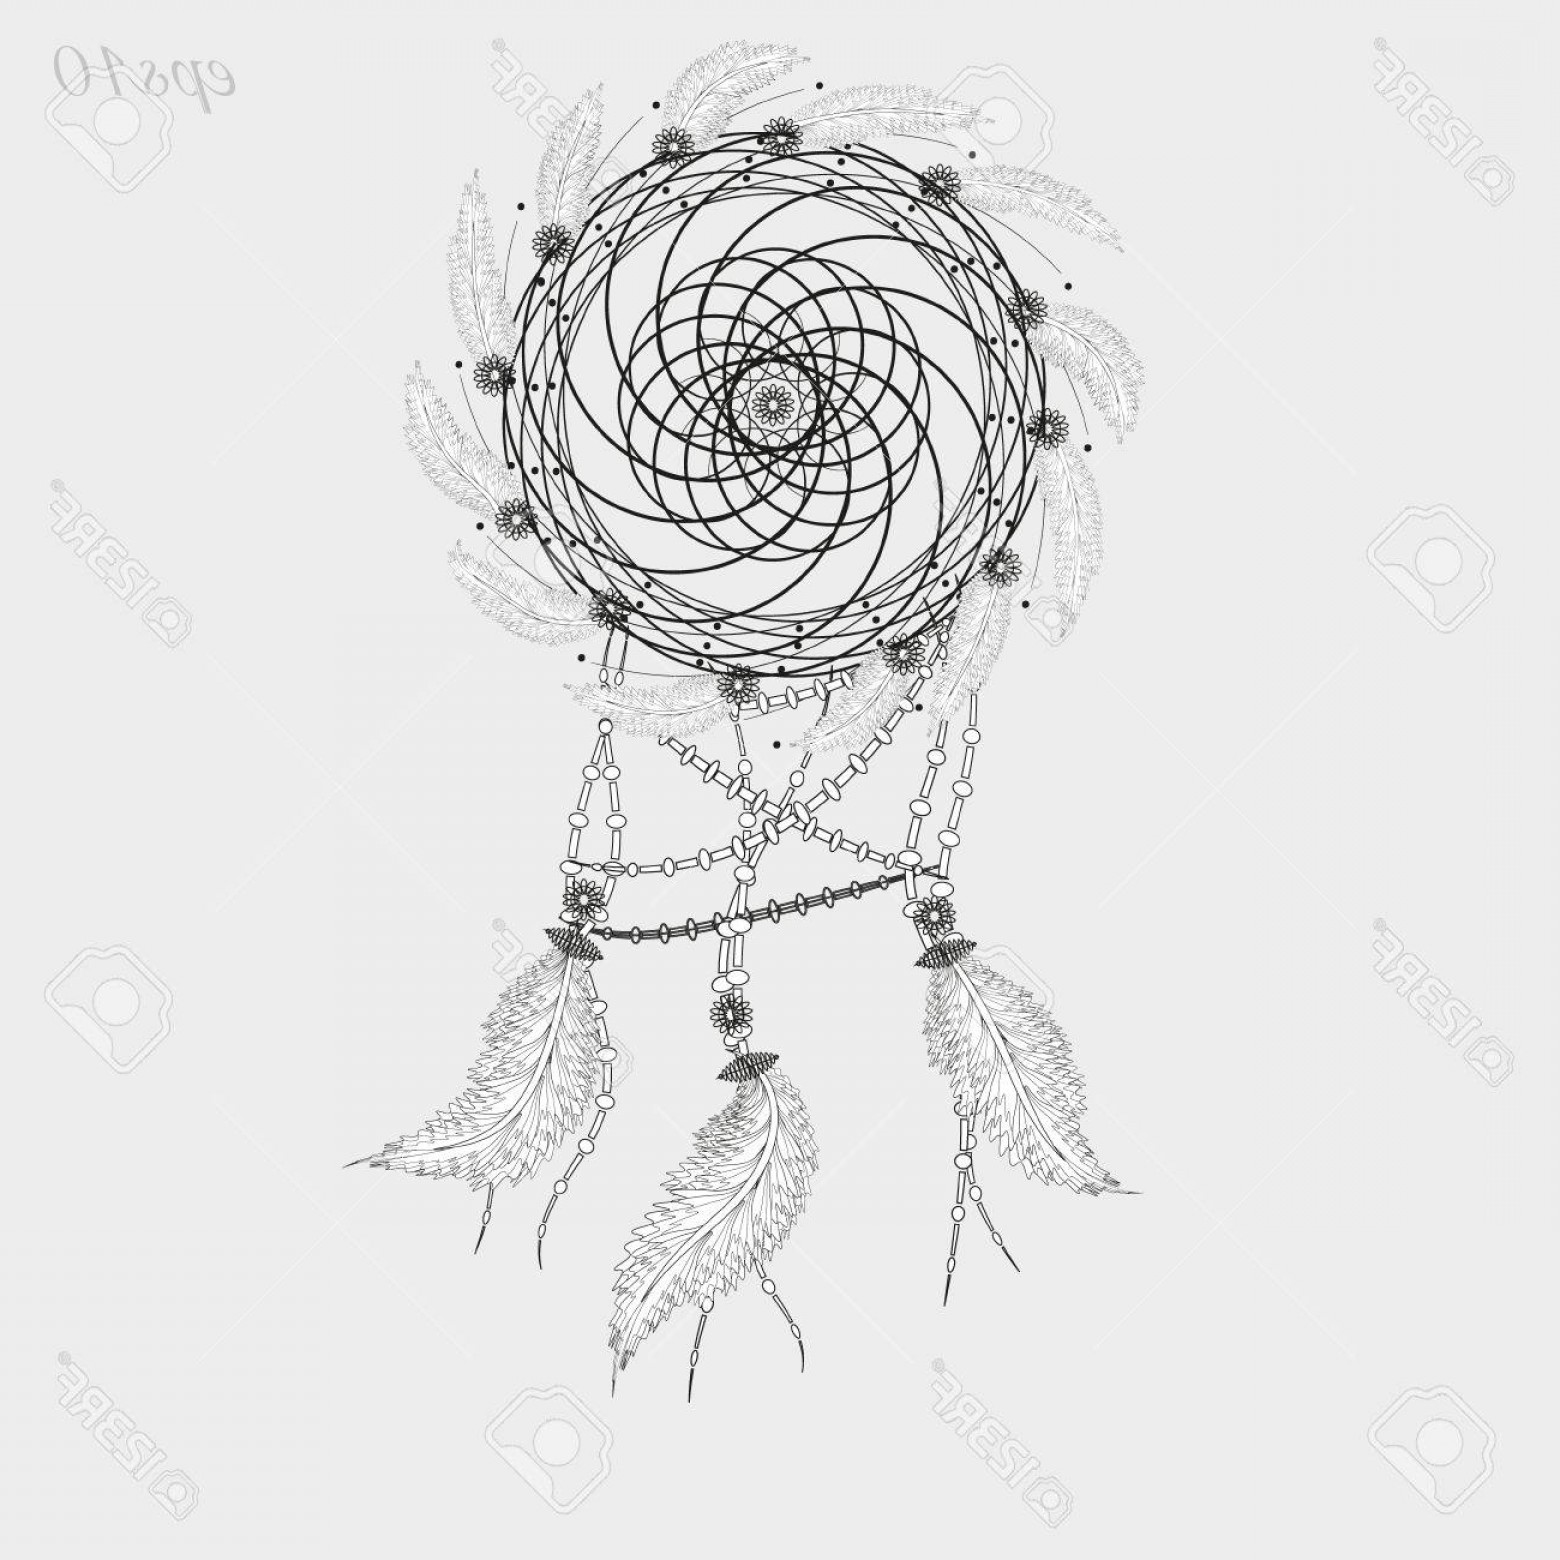 Dreamcatcher Tattoo Vector: Photostock Vector Dreamcatcher Tattoo Graphics Decoration Ritual Magic Feather Woven Twigs Author Dot Handmade Folk Ar